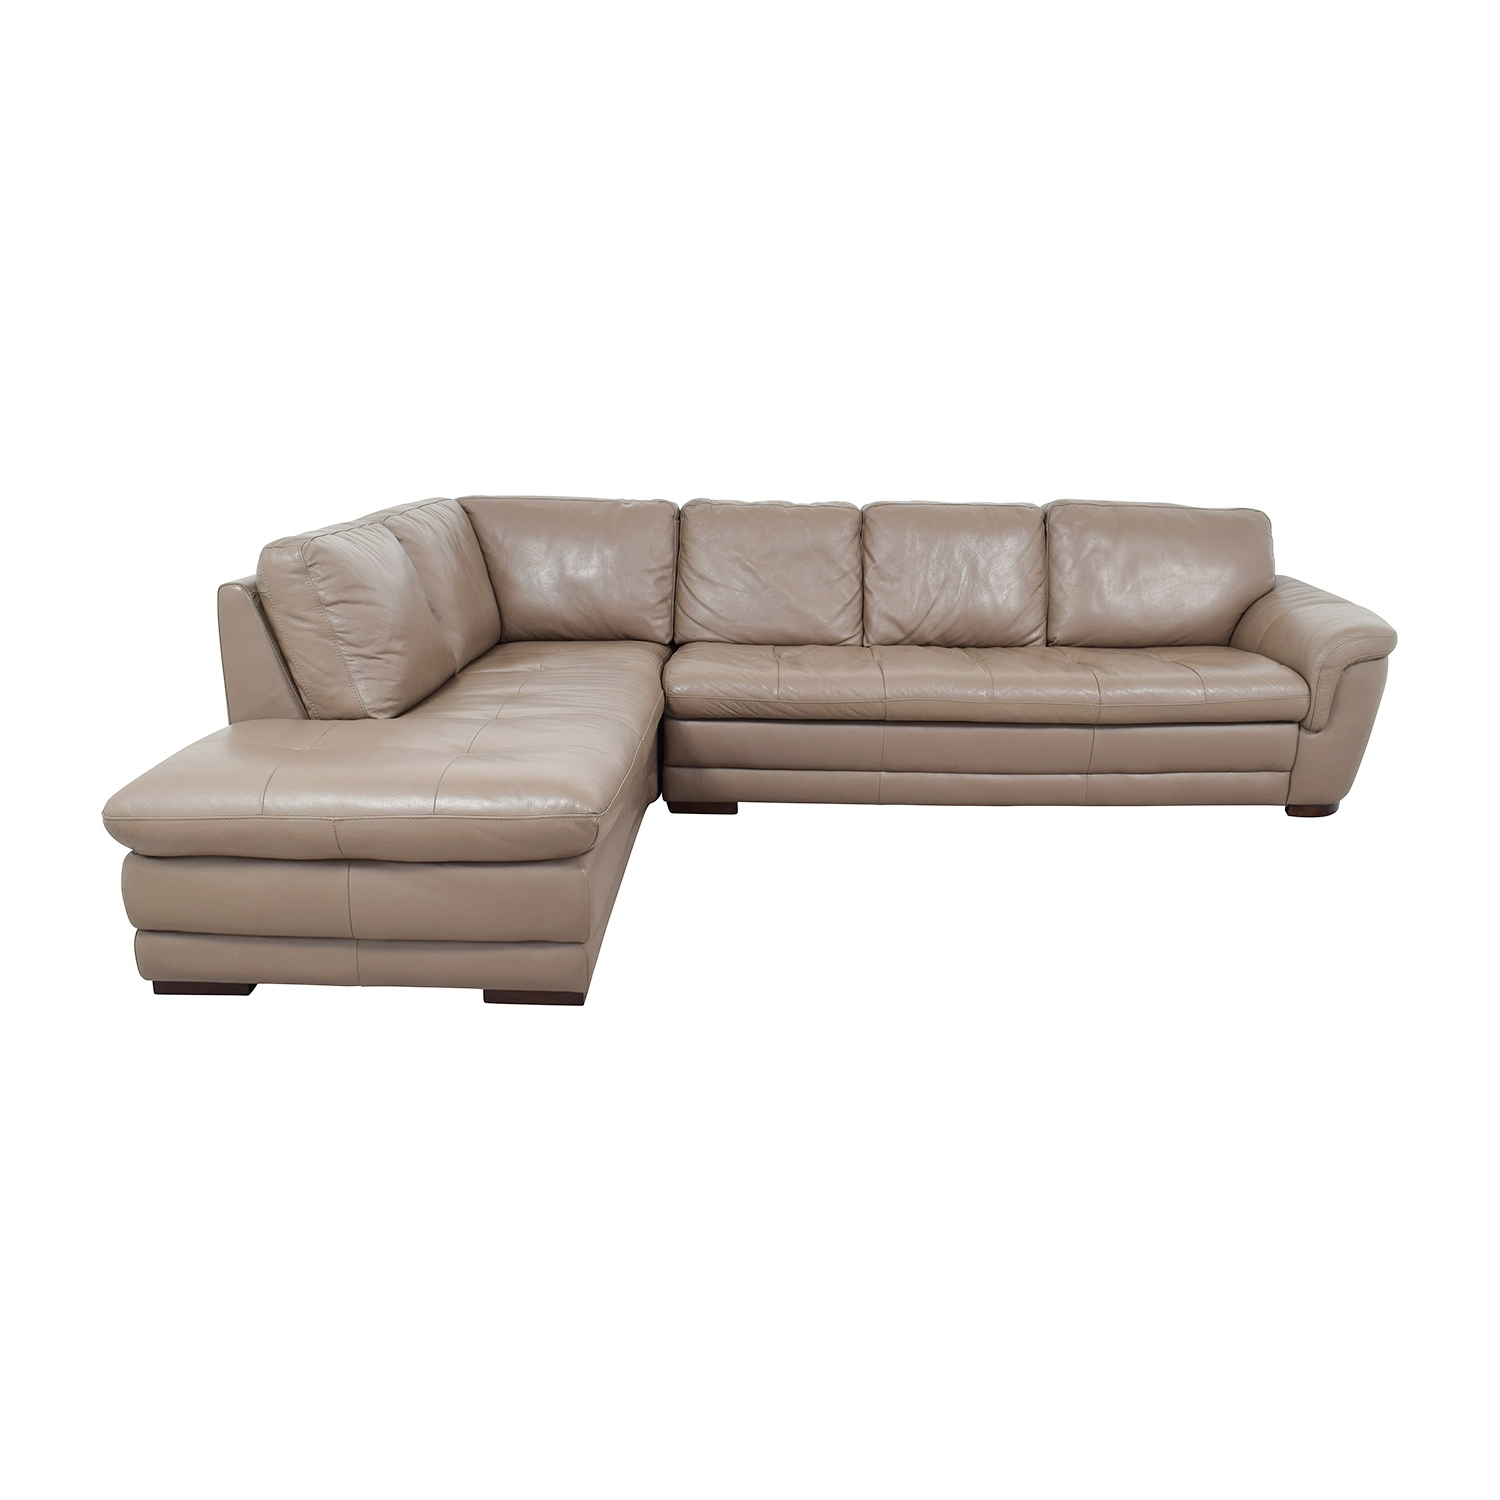 [%74% Off – Raymour And Flanigan Raymour & Flanigan Tan Tufted Pertaining To Most Current Raymour And Flanigan Sectional Sofas|Raymour And Flanigan Sectional Sofas Inside Well Known 74% Off – Raymour And Flanigan Raymour & Flanigan Tan Tufted|Best And Newest Raymour And Flanigan Sectional Sofas Within 74% Off – Raymour And Flanigan Raymour & Flanigan Tan Tufted|Recent 74% Off – Raymour And Flanigan Raymour & Flanigan Tan Tufted With Regard To Raymour And Flanigan Sectional Sofas%] (View 6 of 20)